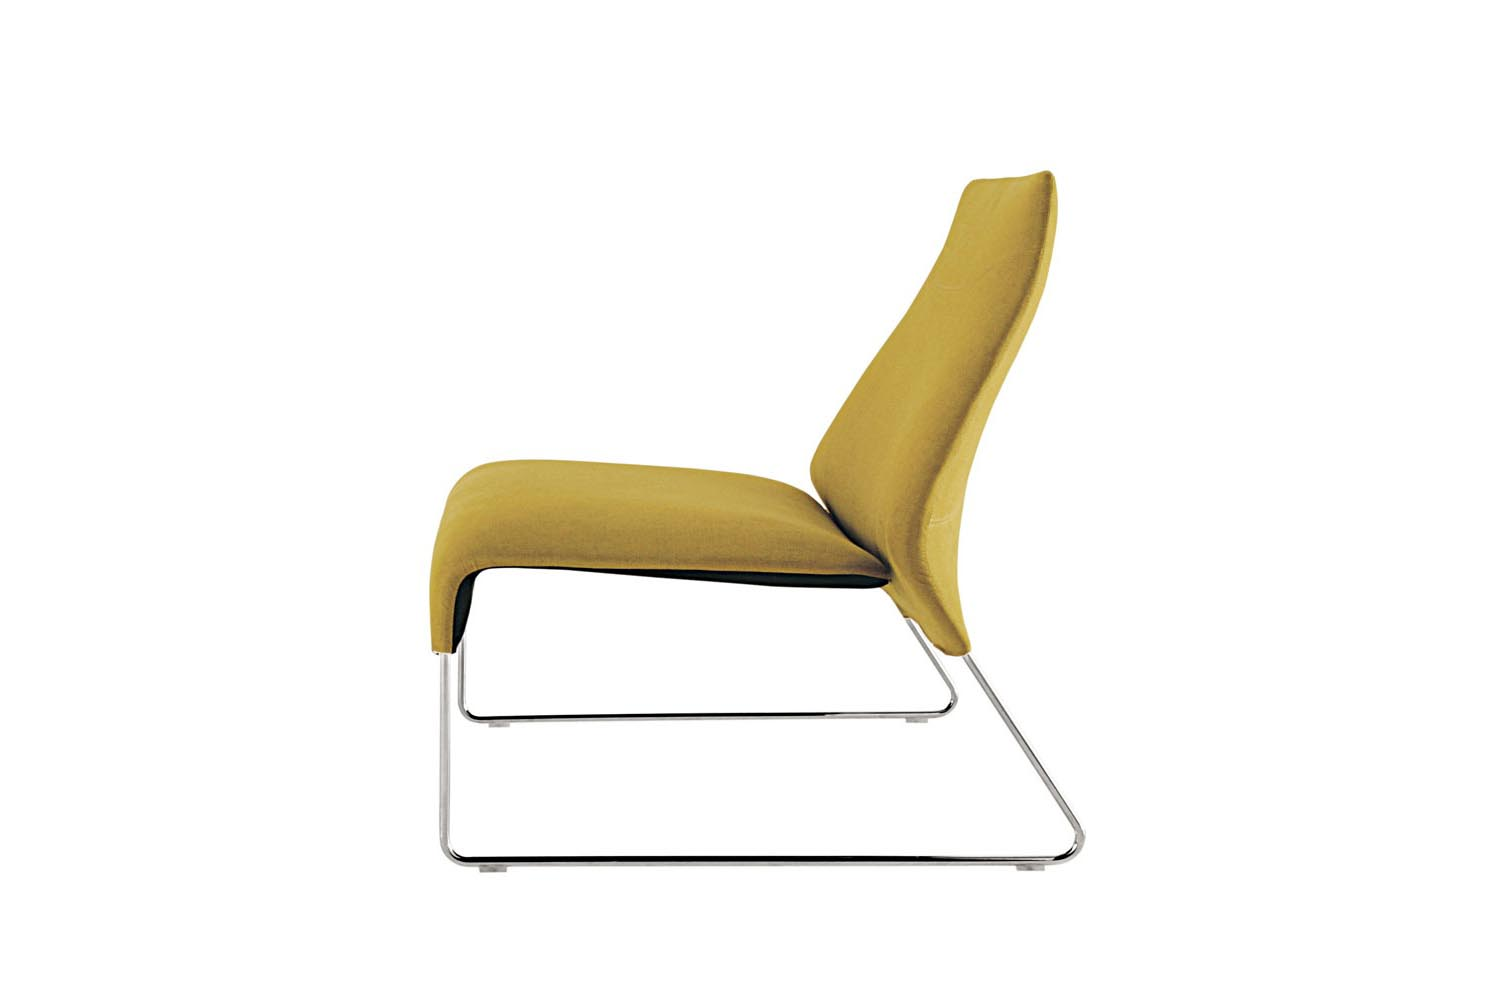 Sedia Urquiola B&amp Lazy 05 Armchair By Patricia Urquiola For B B Italia Space